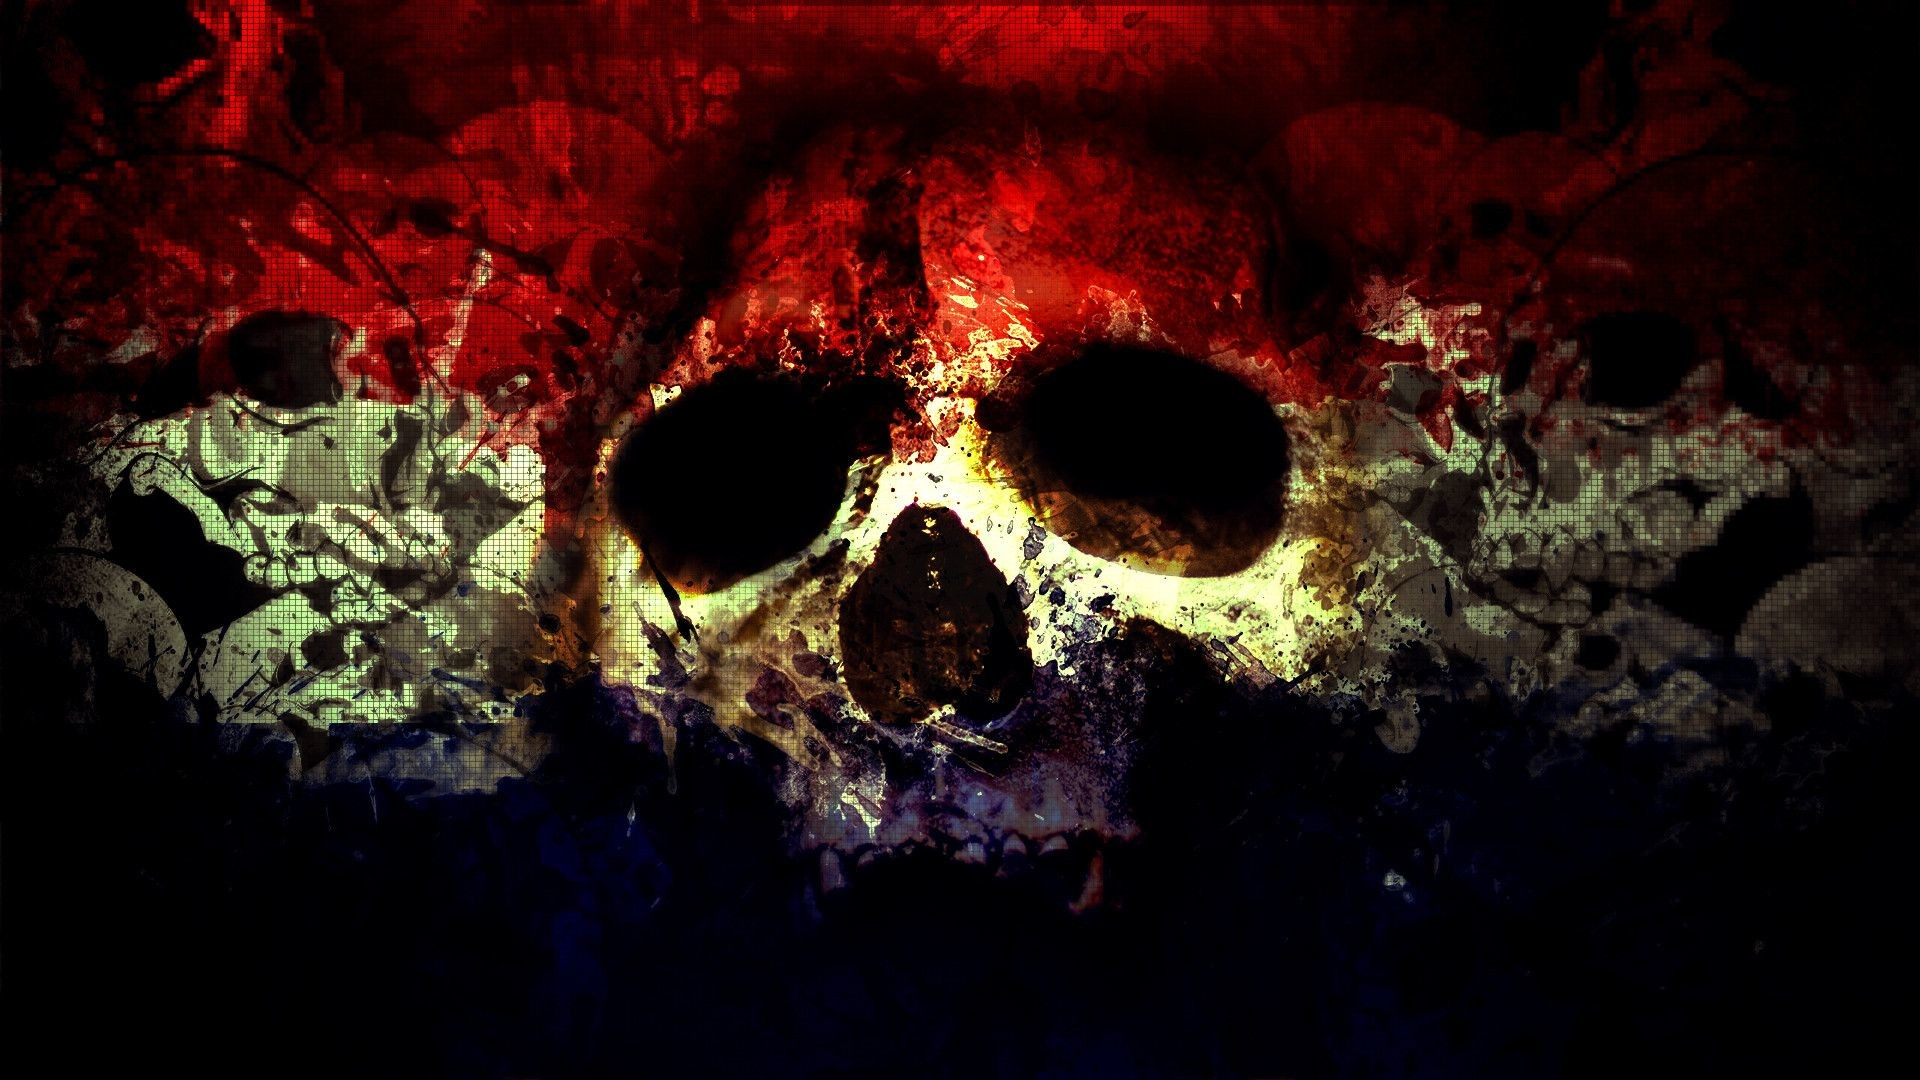 1920x1080 4. cool skull wallpapers HD4